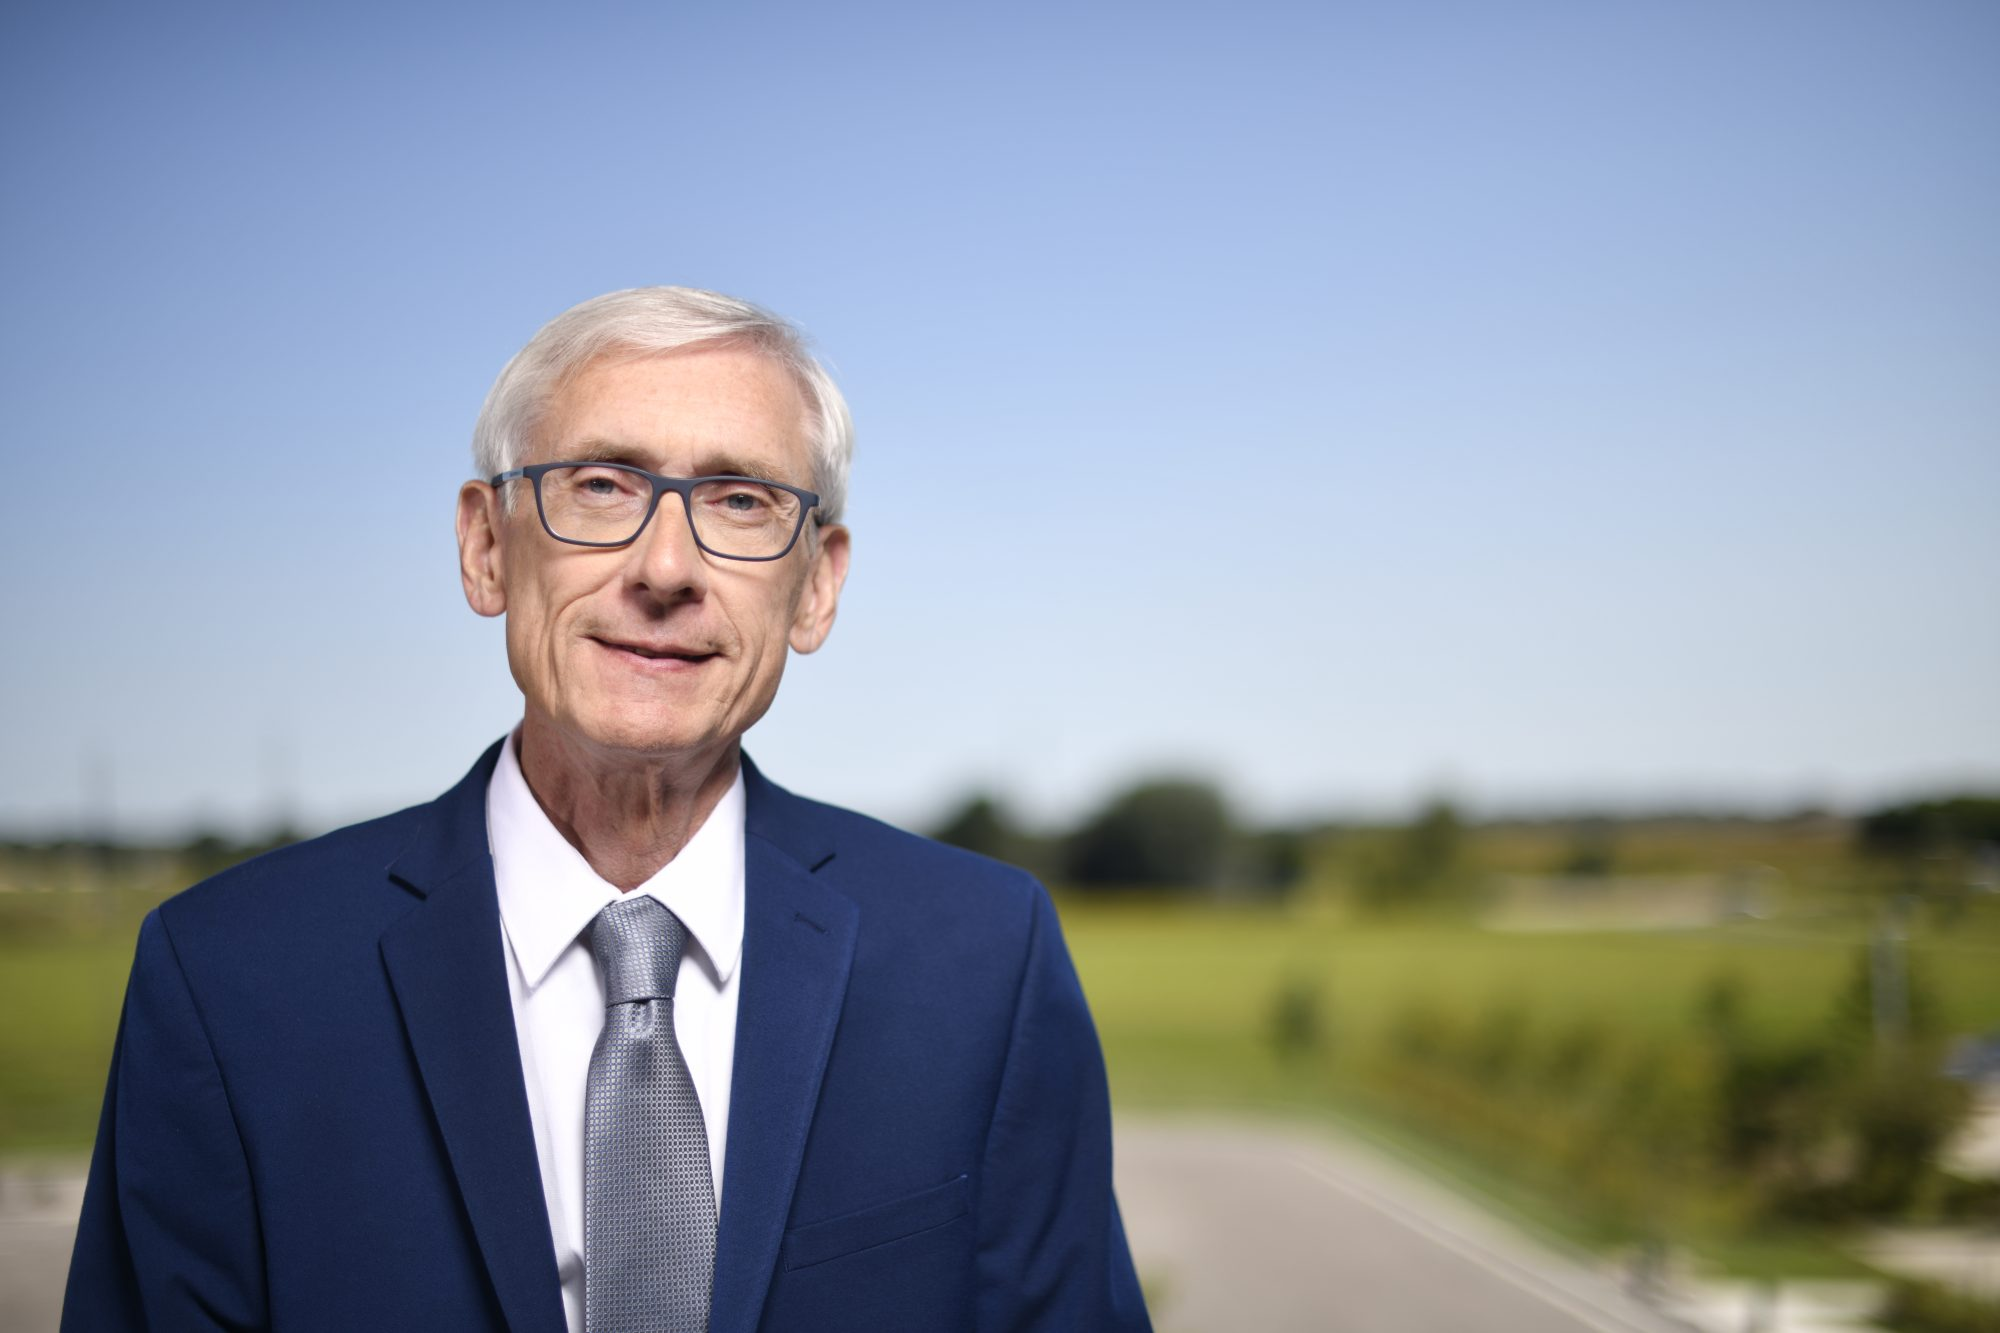 Gov. Evers Attends GridEx V Exercise at the Wisconsin Dept. of Military Affairs